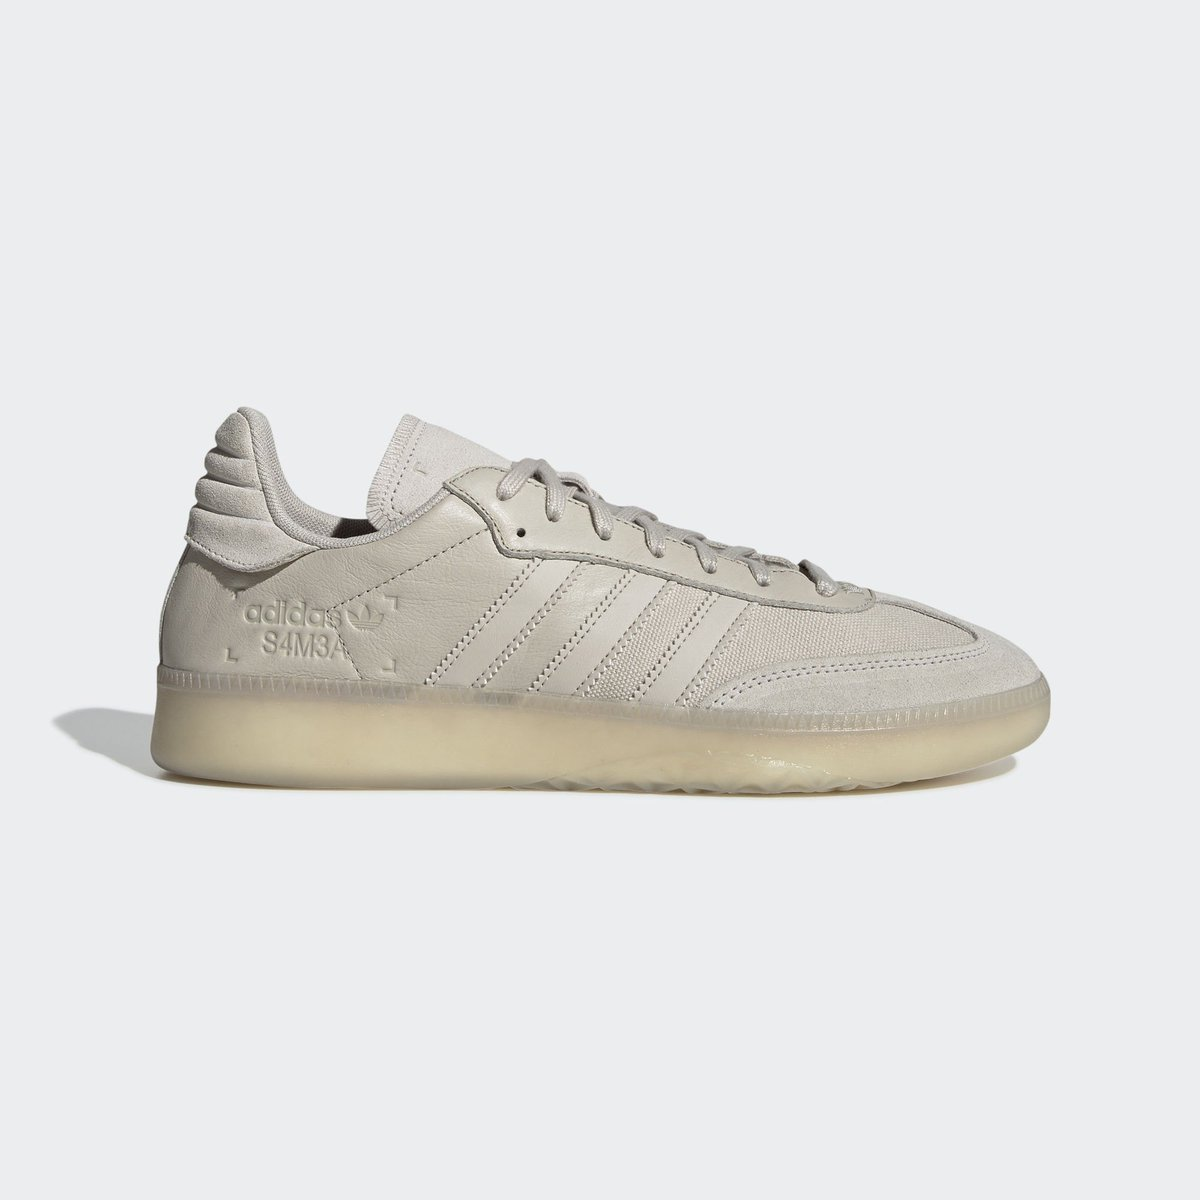 2d11fa66554ba 1. 2. adidas alerts  adidasalerts. Now available ...